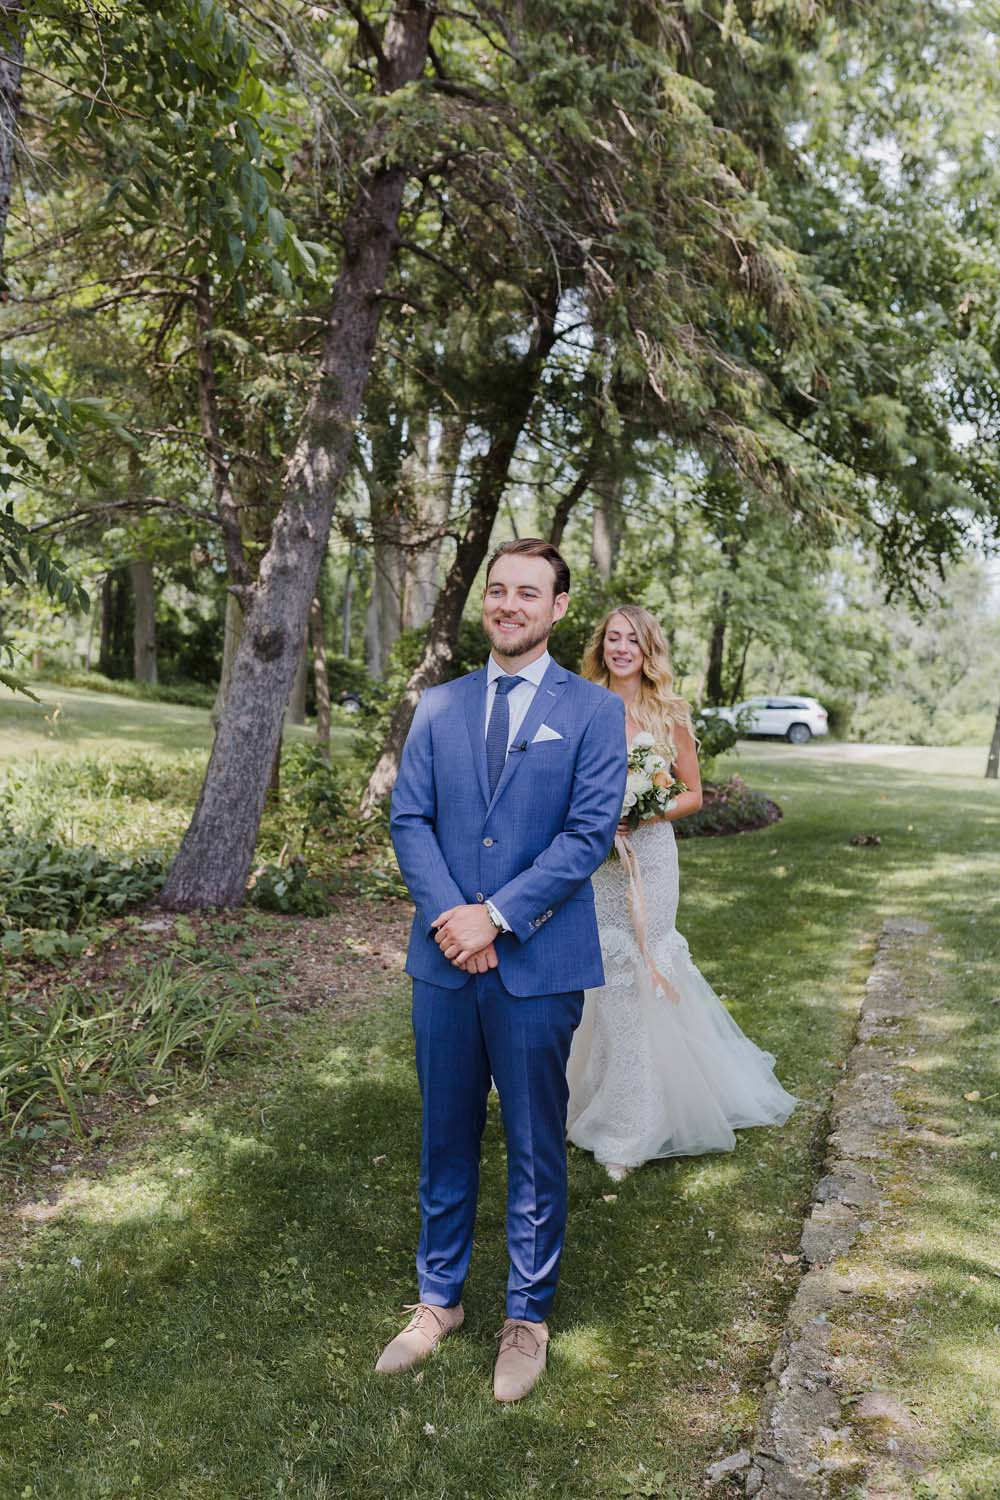 A Whimsical Wedding at Windmill Point, Ontario - First Look